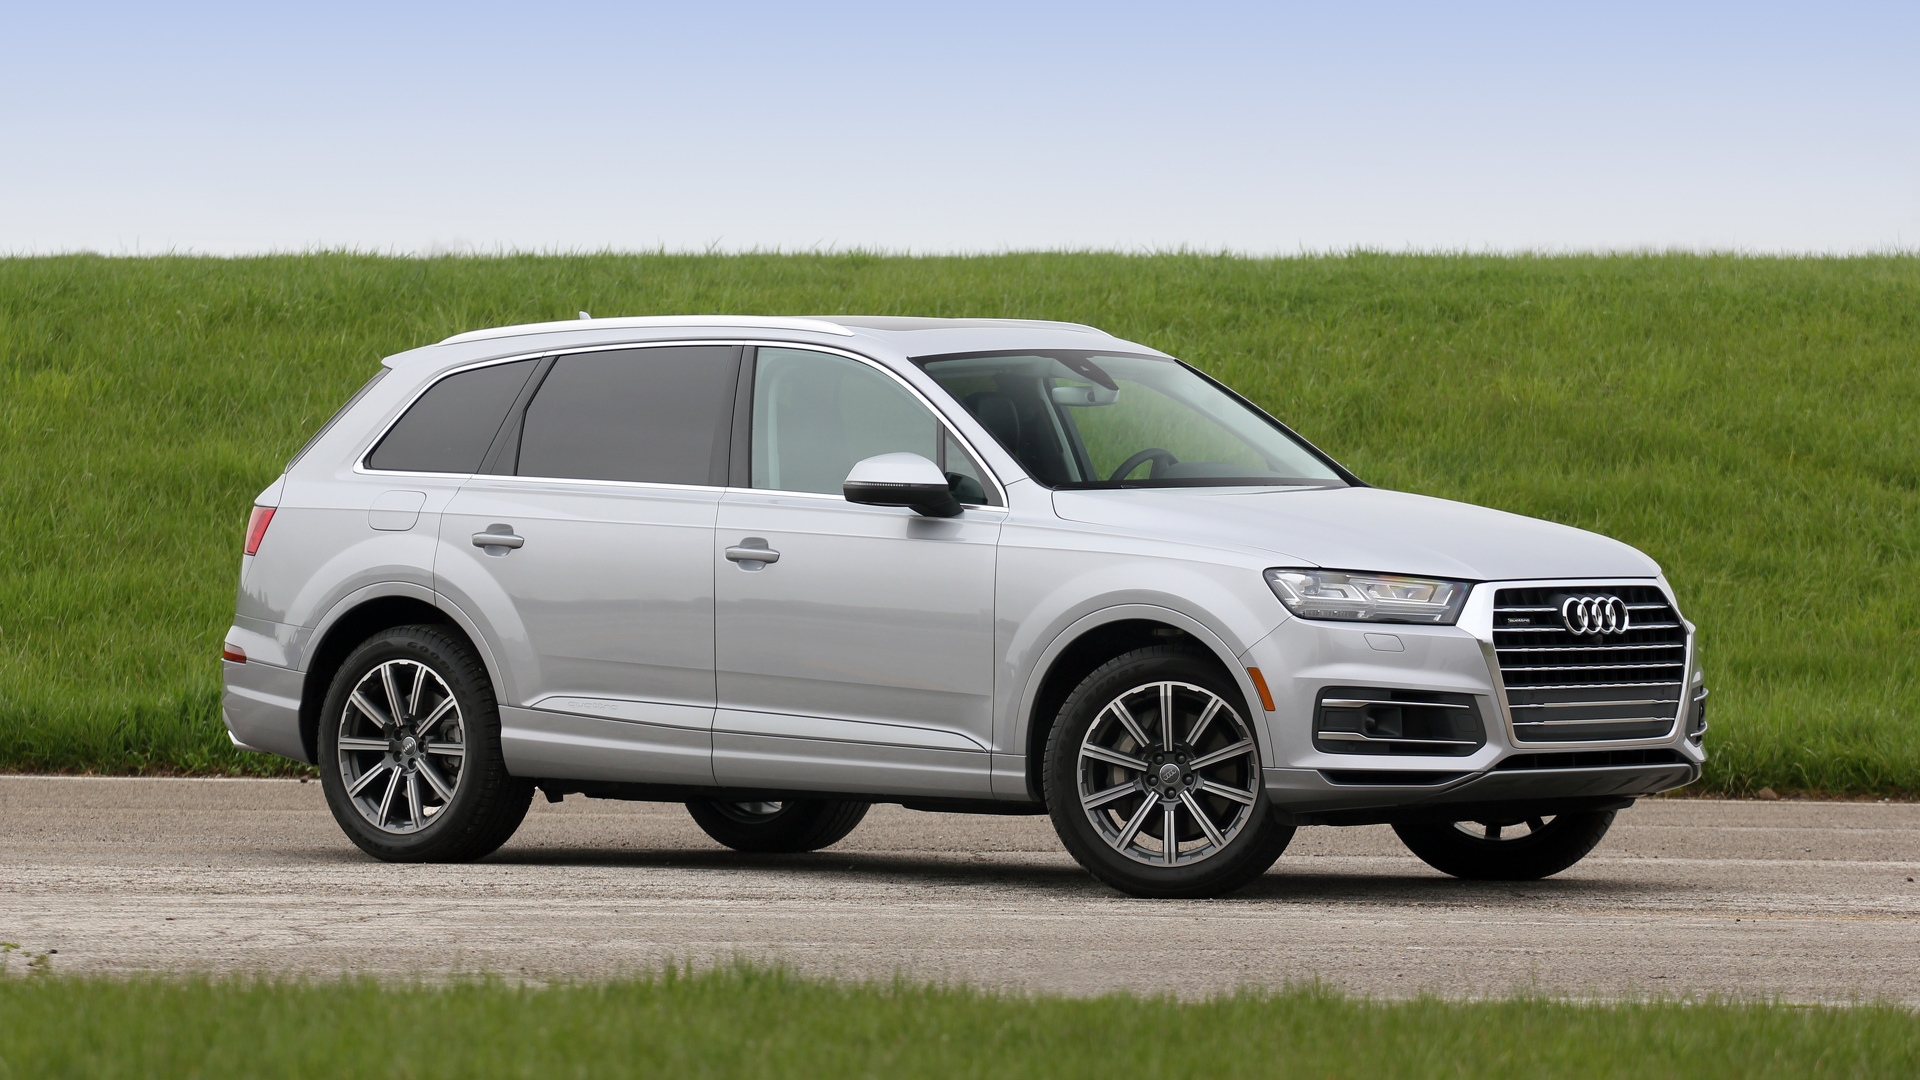 2017 Audi Q7 Review | 2017 - 2018 Best Cars Reviews